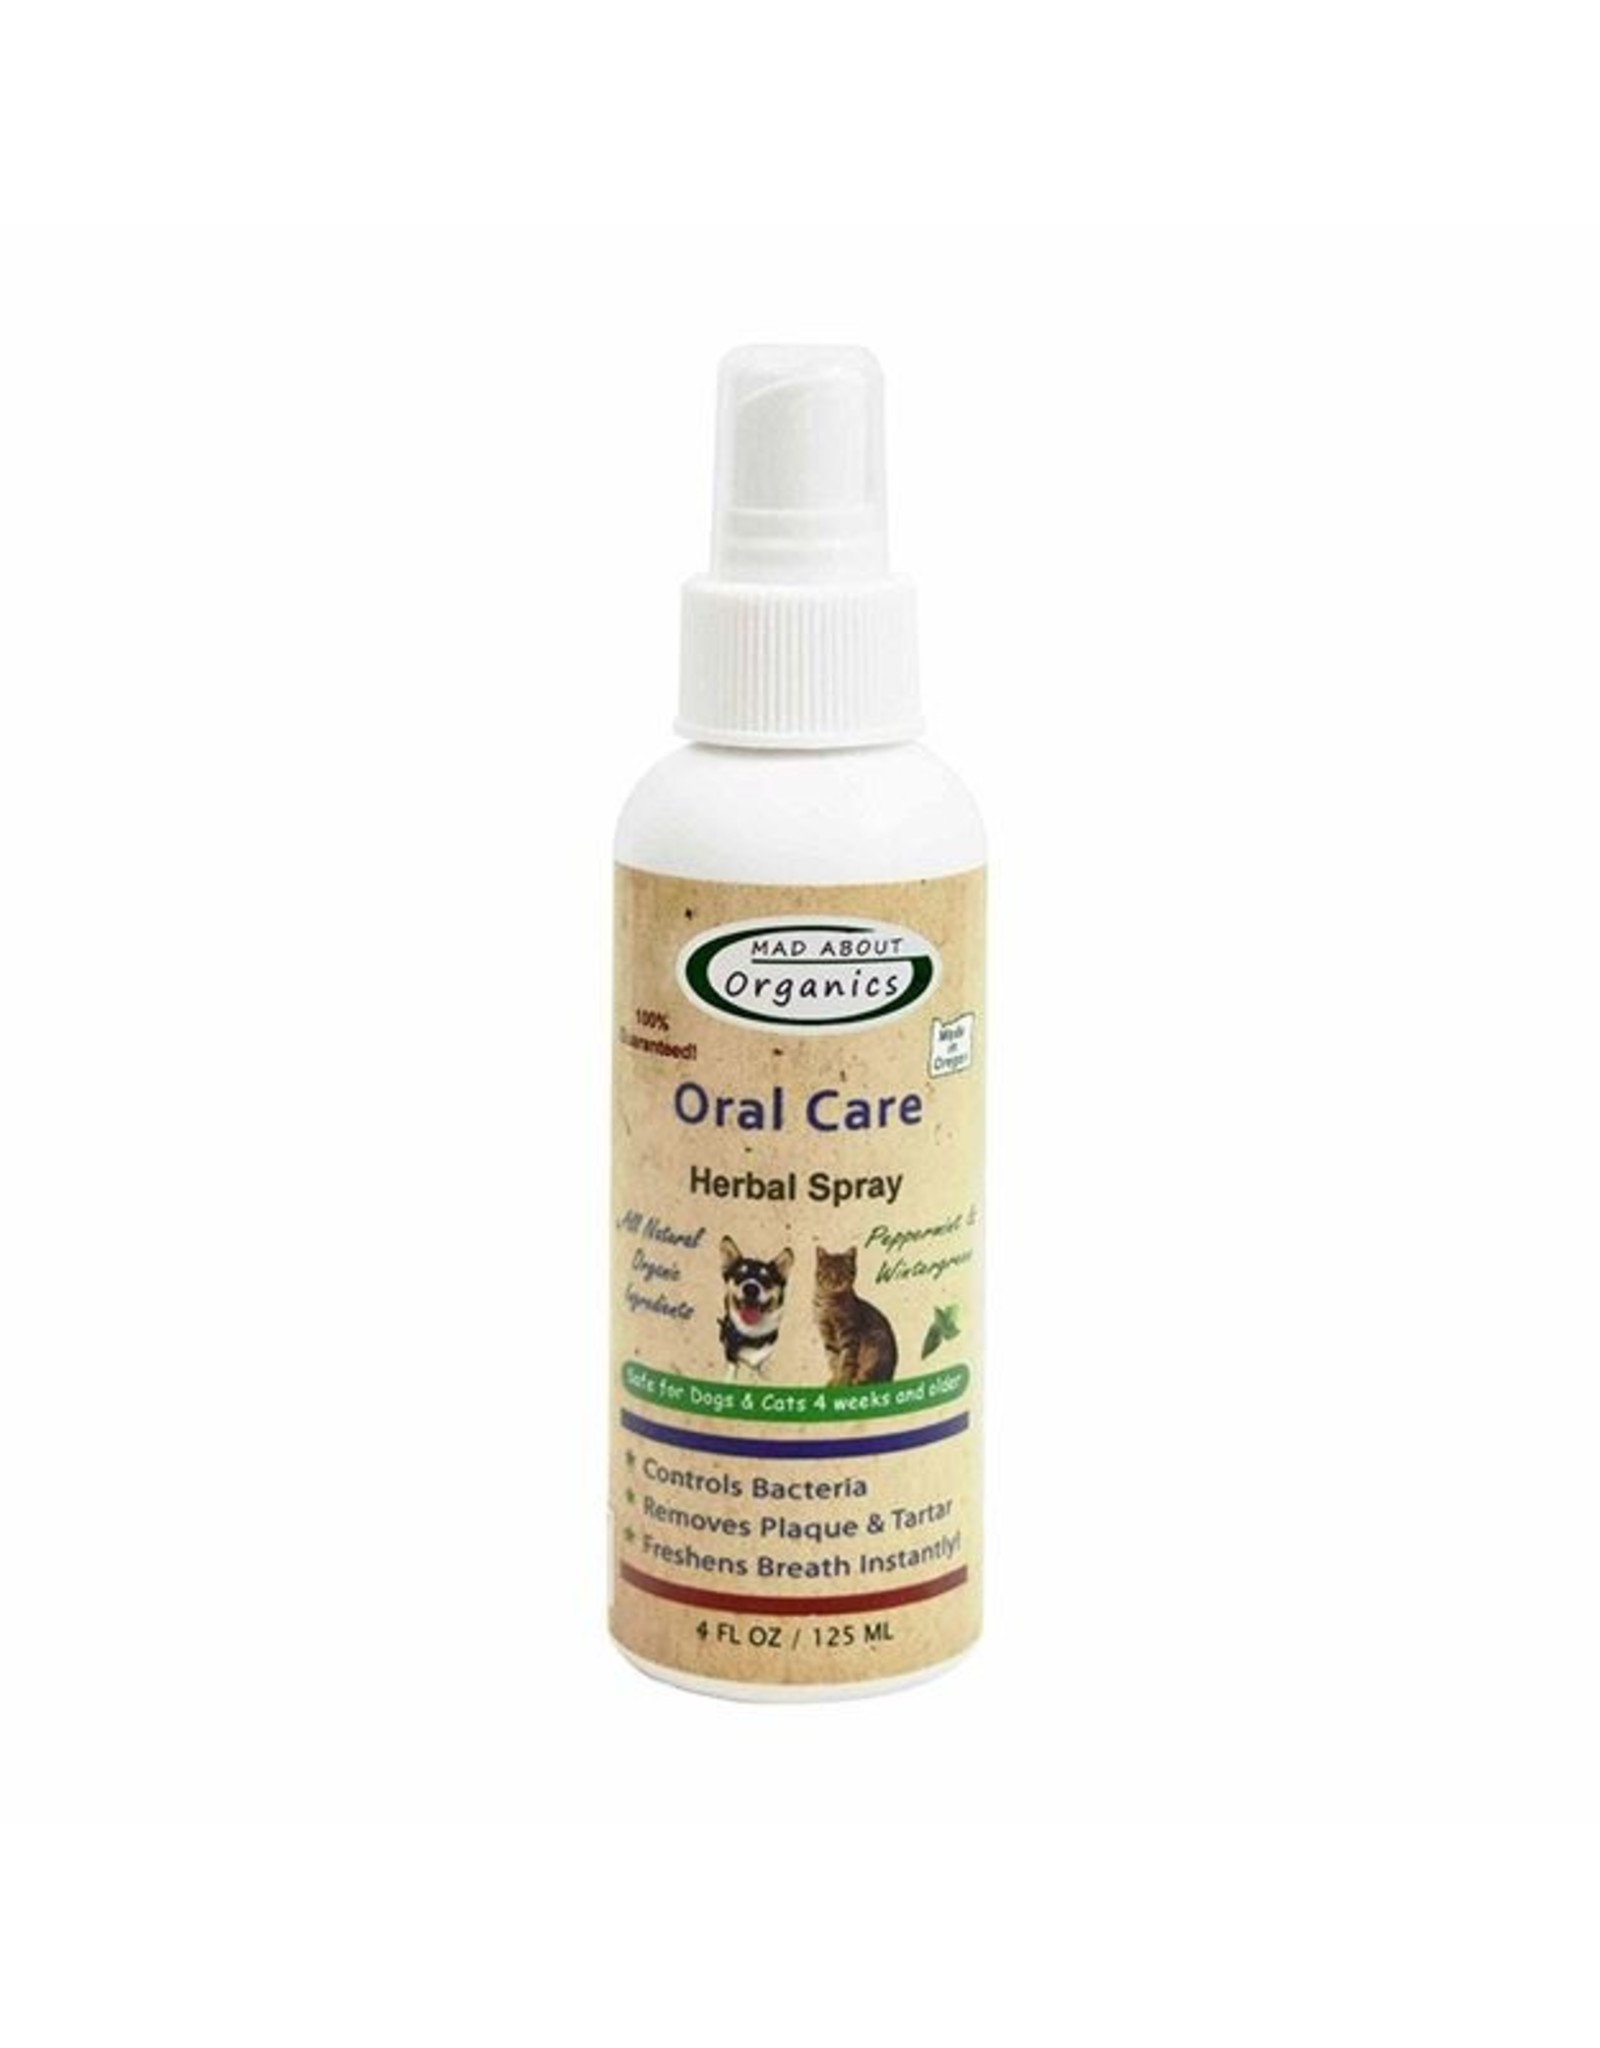 Mad About Organics Mad About Organics Oral Spray 4oz